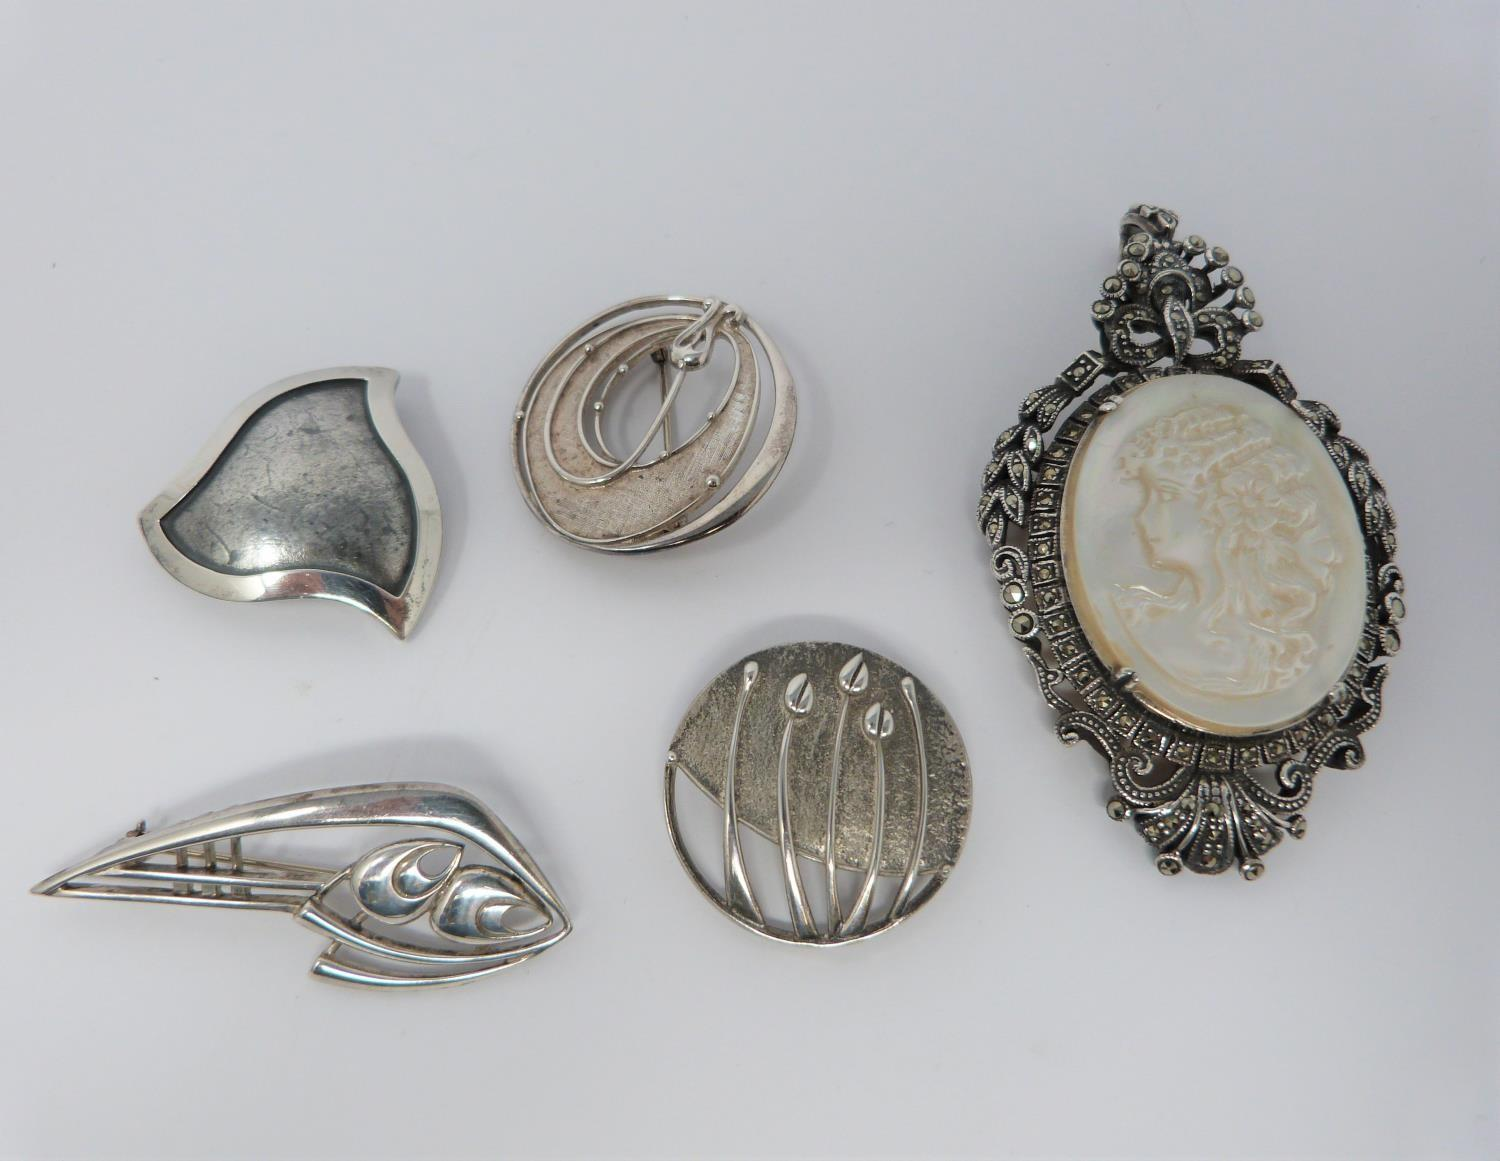 A silver mother of pearl cameo brooch/pendant with Marcasite stones with four other vintage